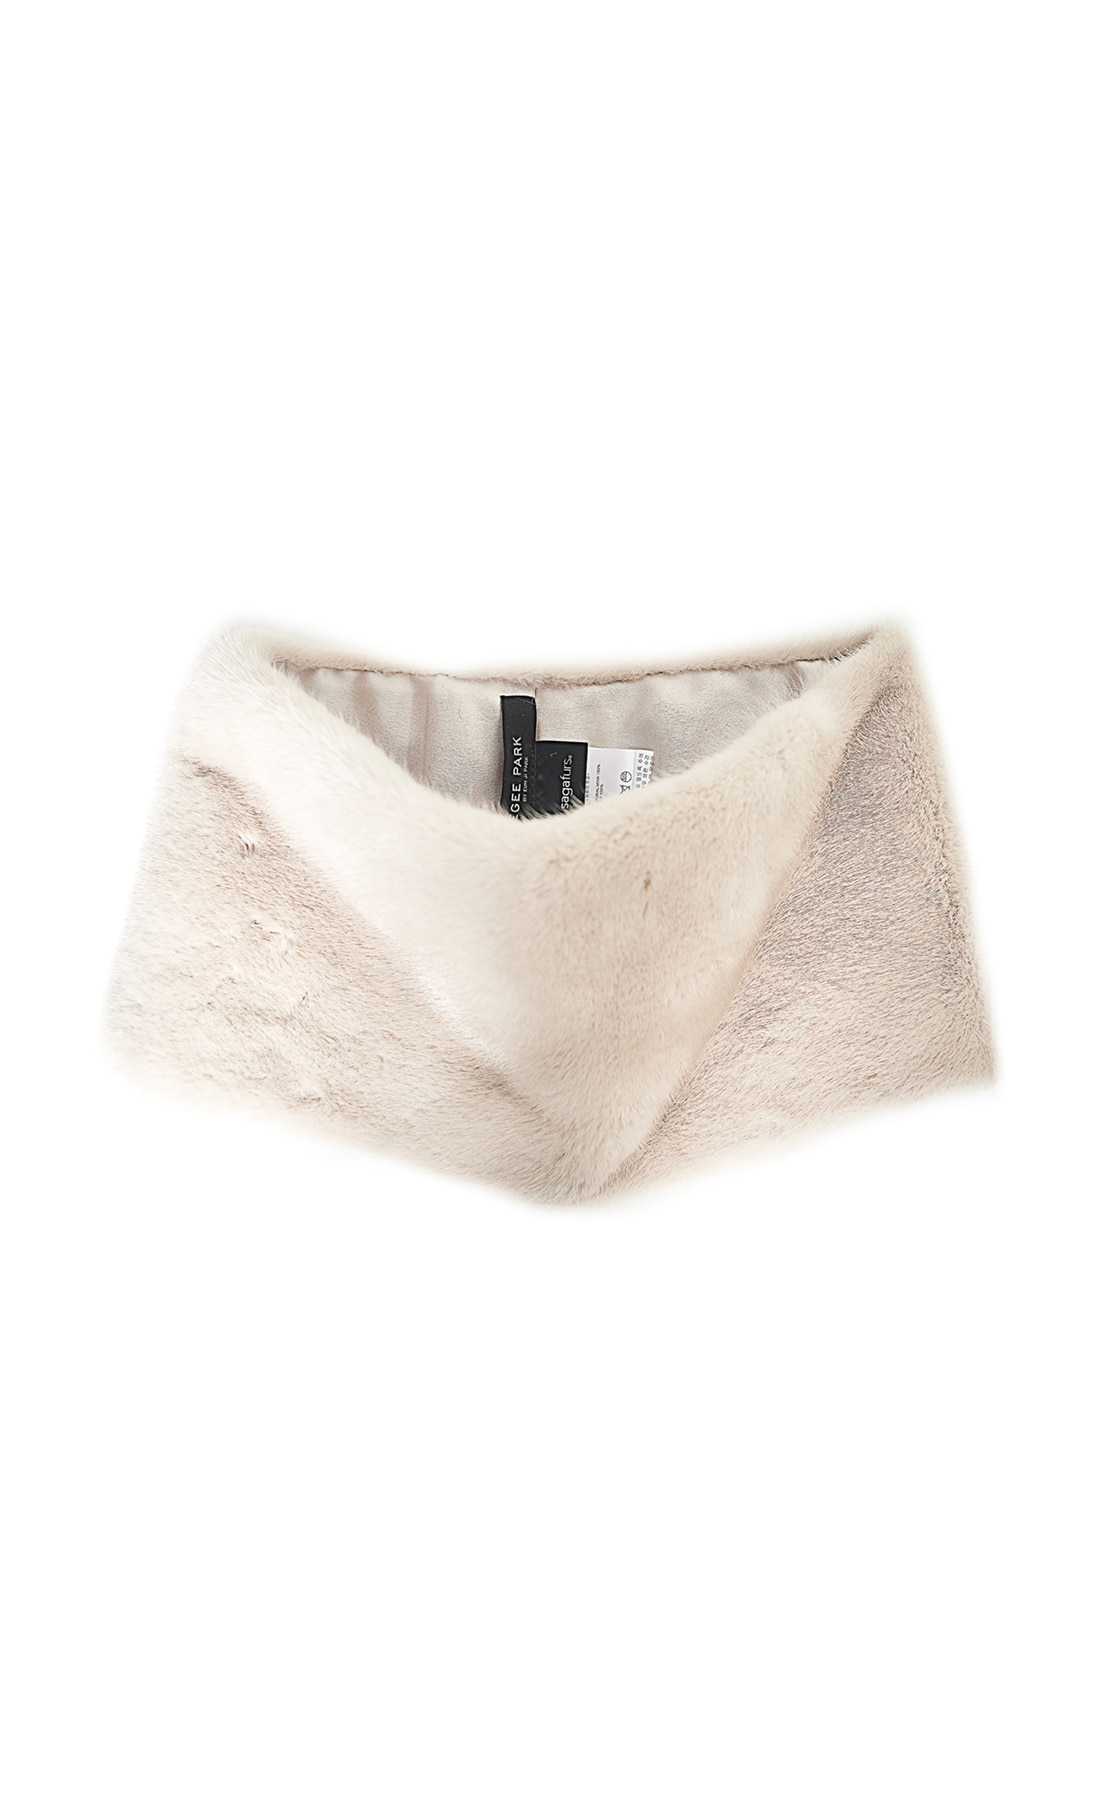 NATURAL MINK NECK WARMER